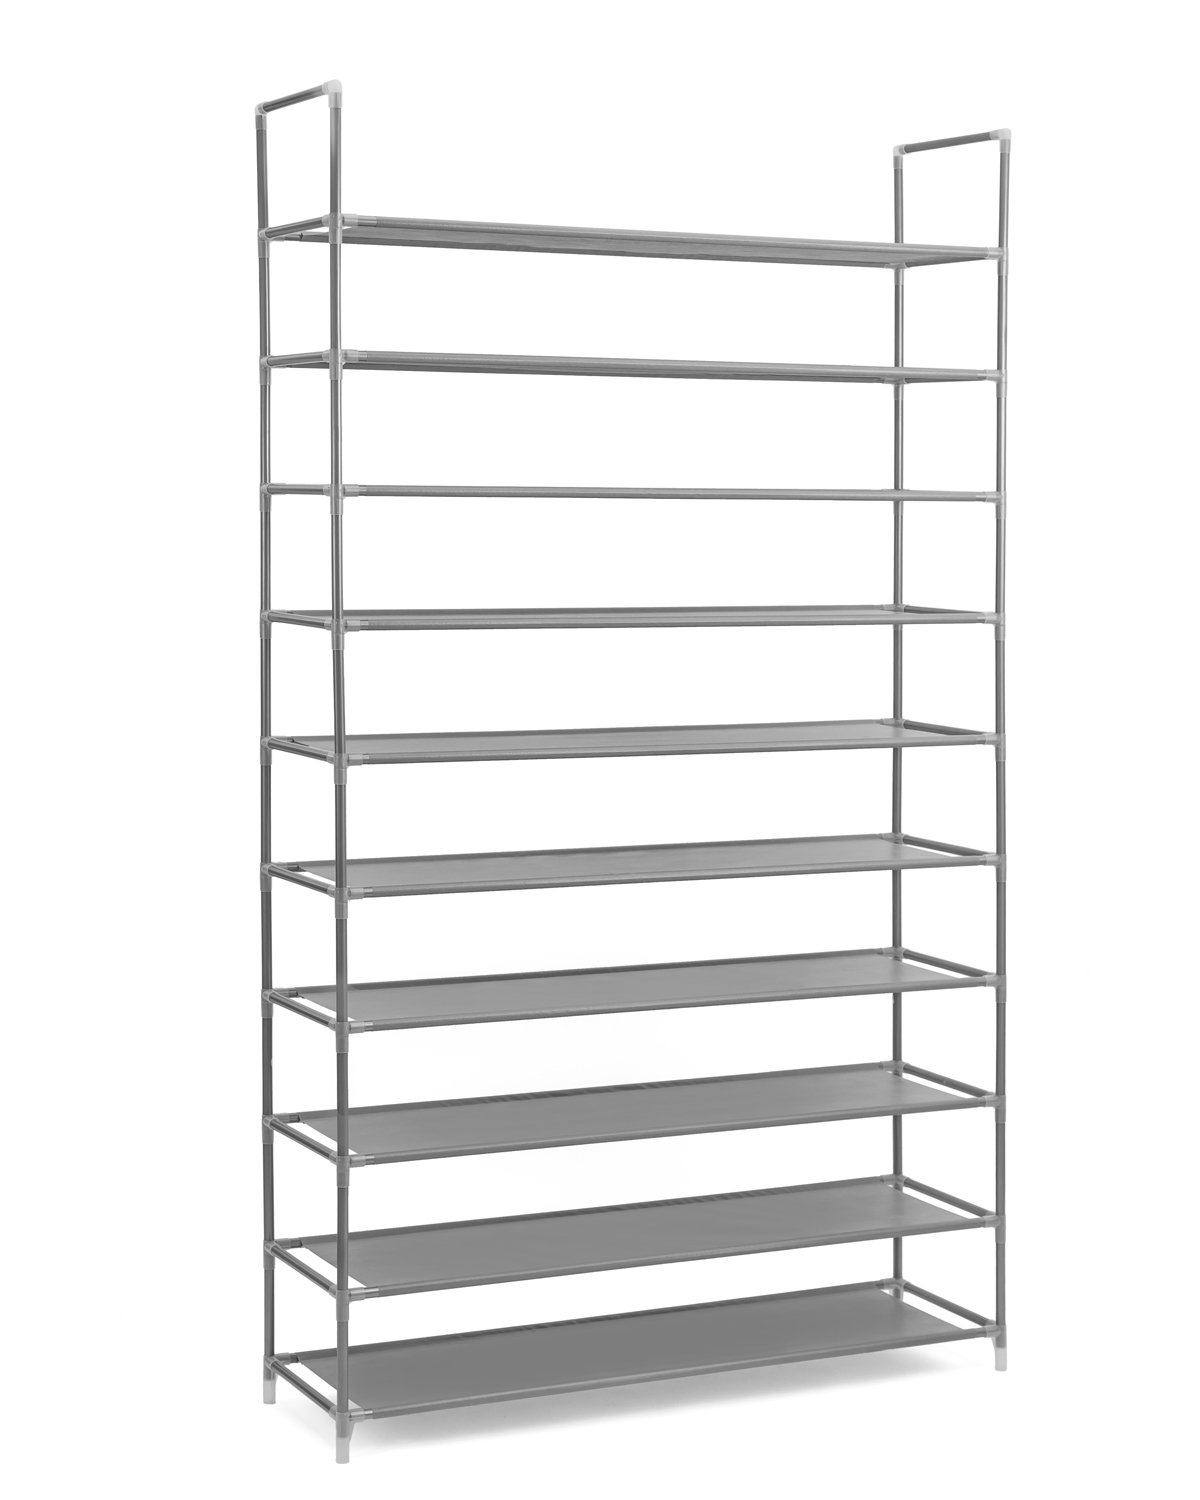 tech w htm workbench upper shelf steel ds ss stainless f double shelves with table rdm x bench